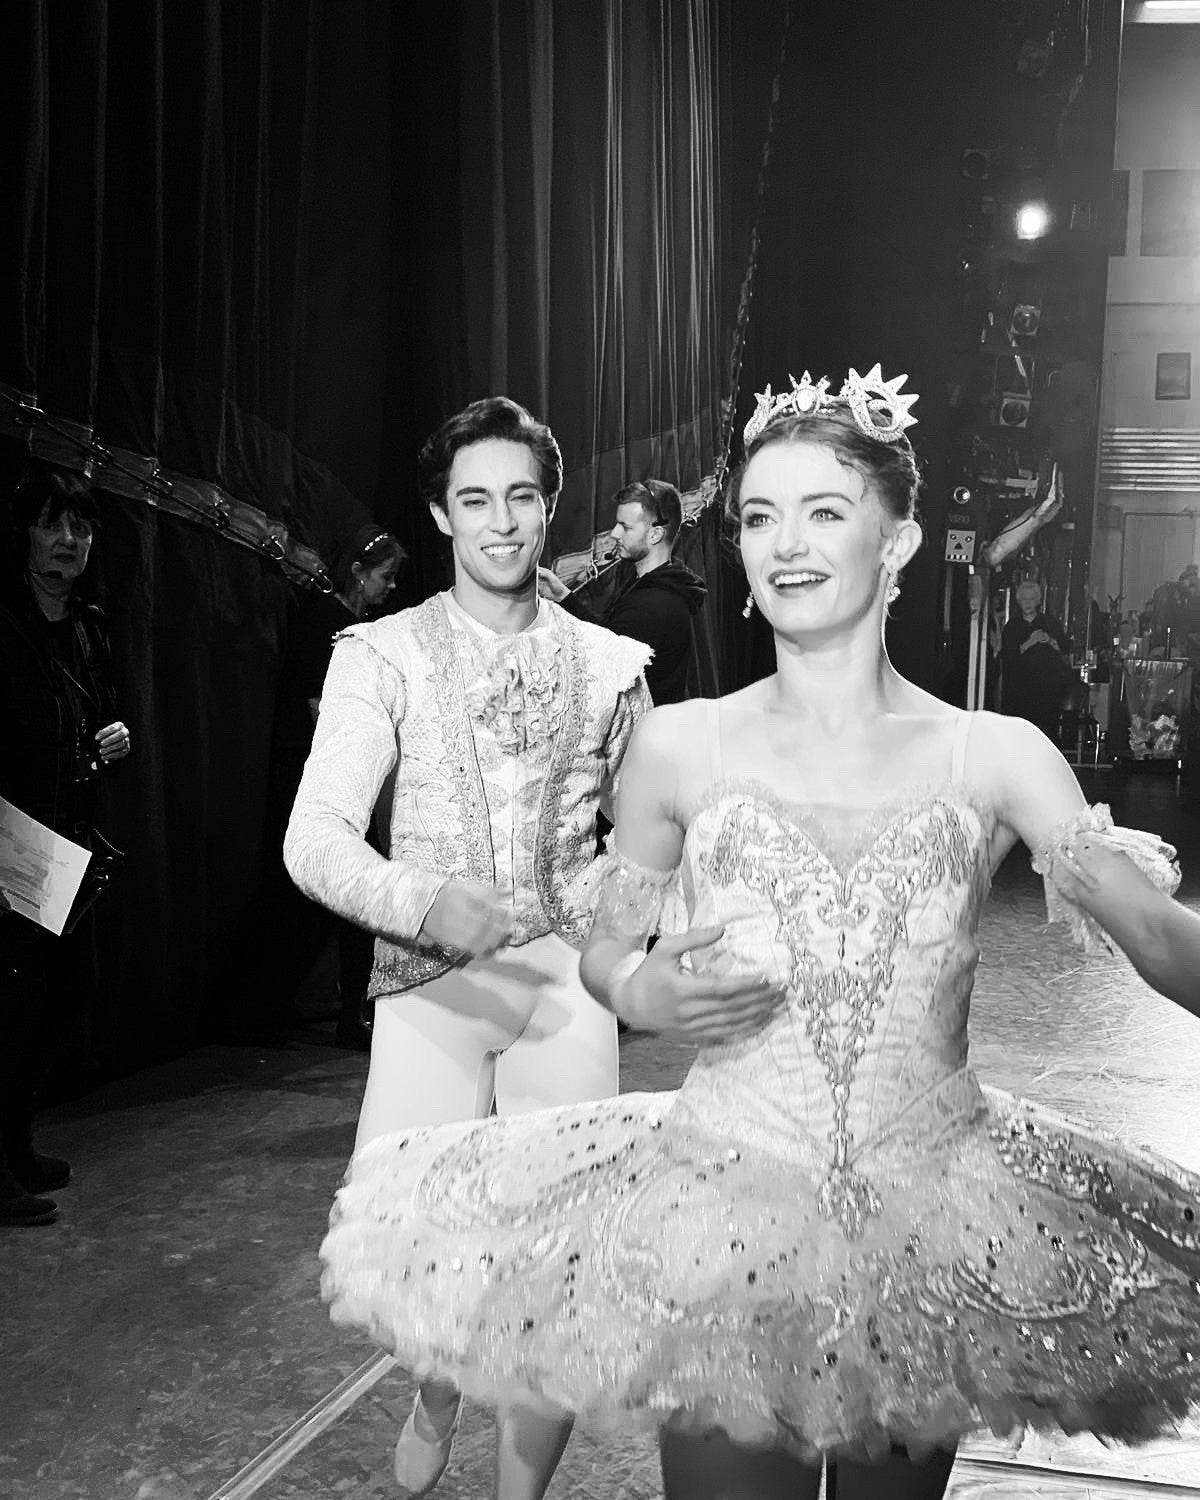 Dancer Anna Rose O'Sullivan coming off stage wearing costume with her partner James Hay after performing